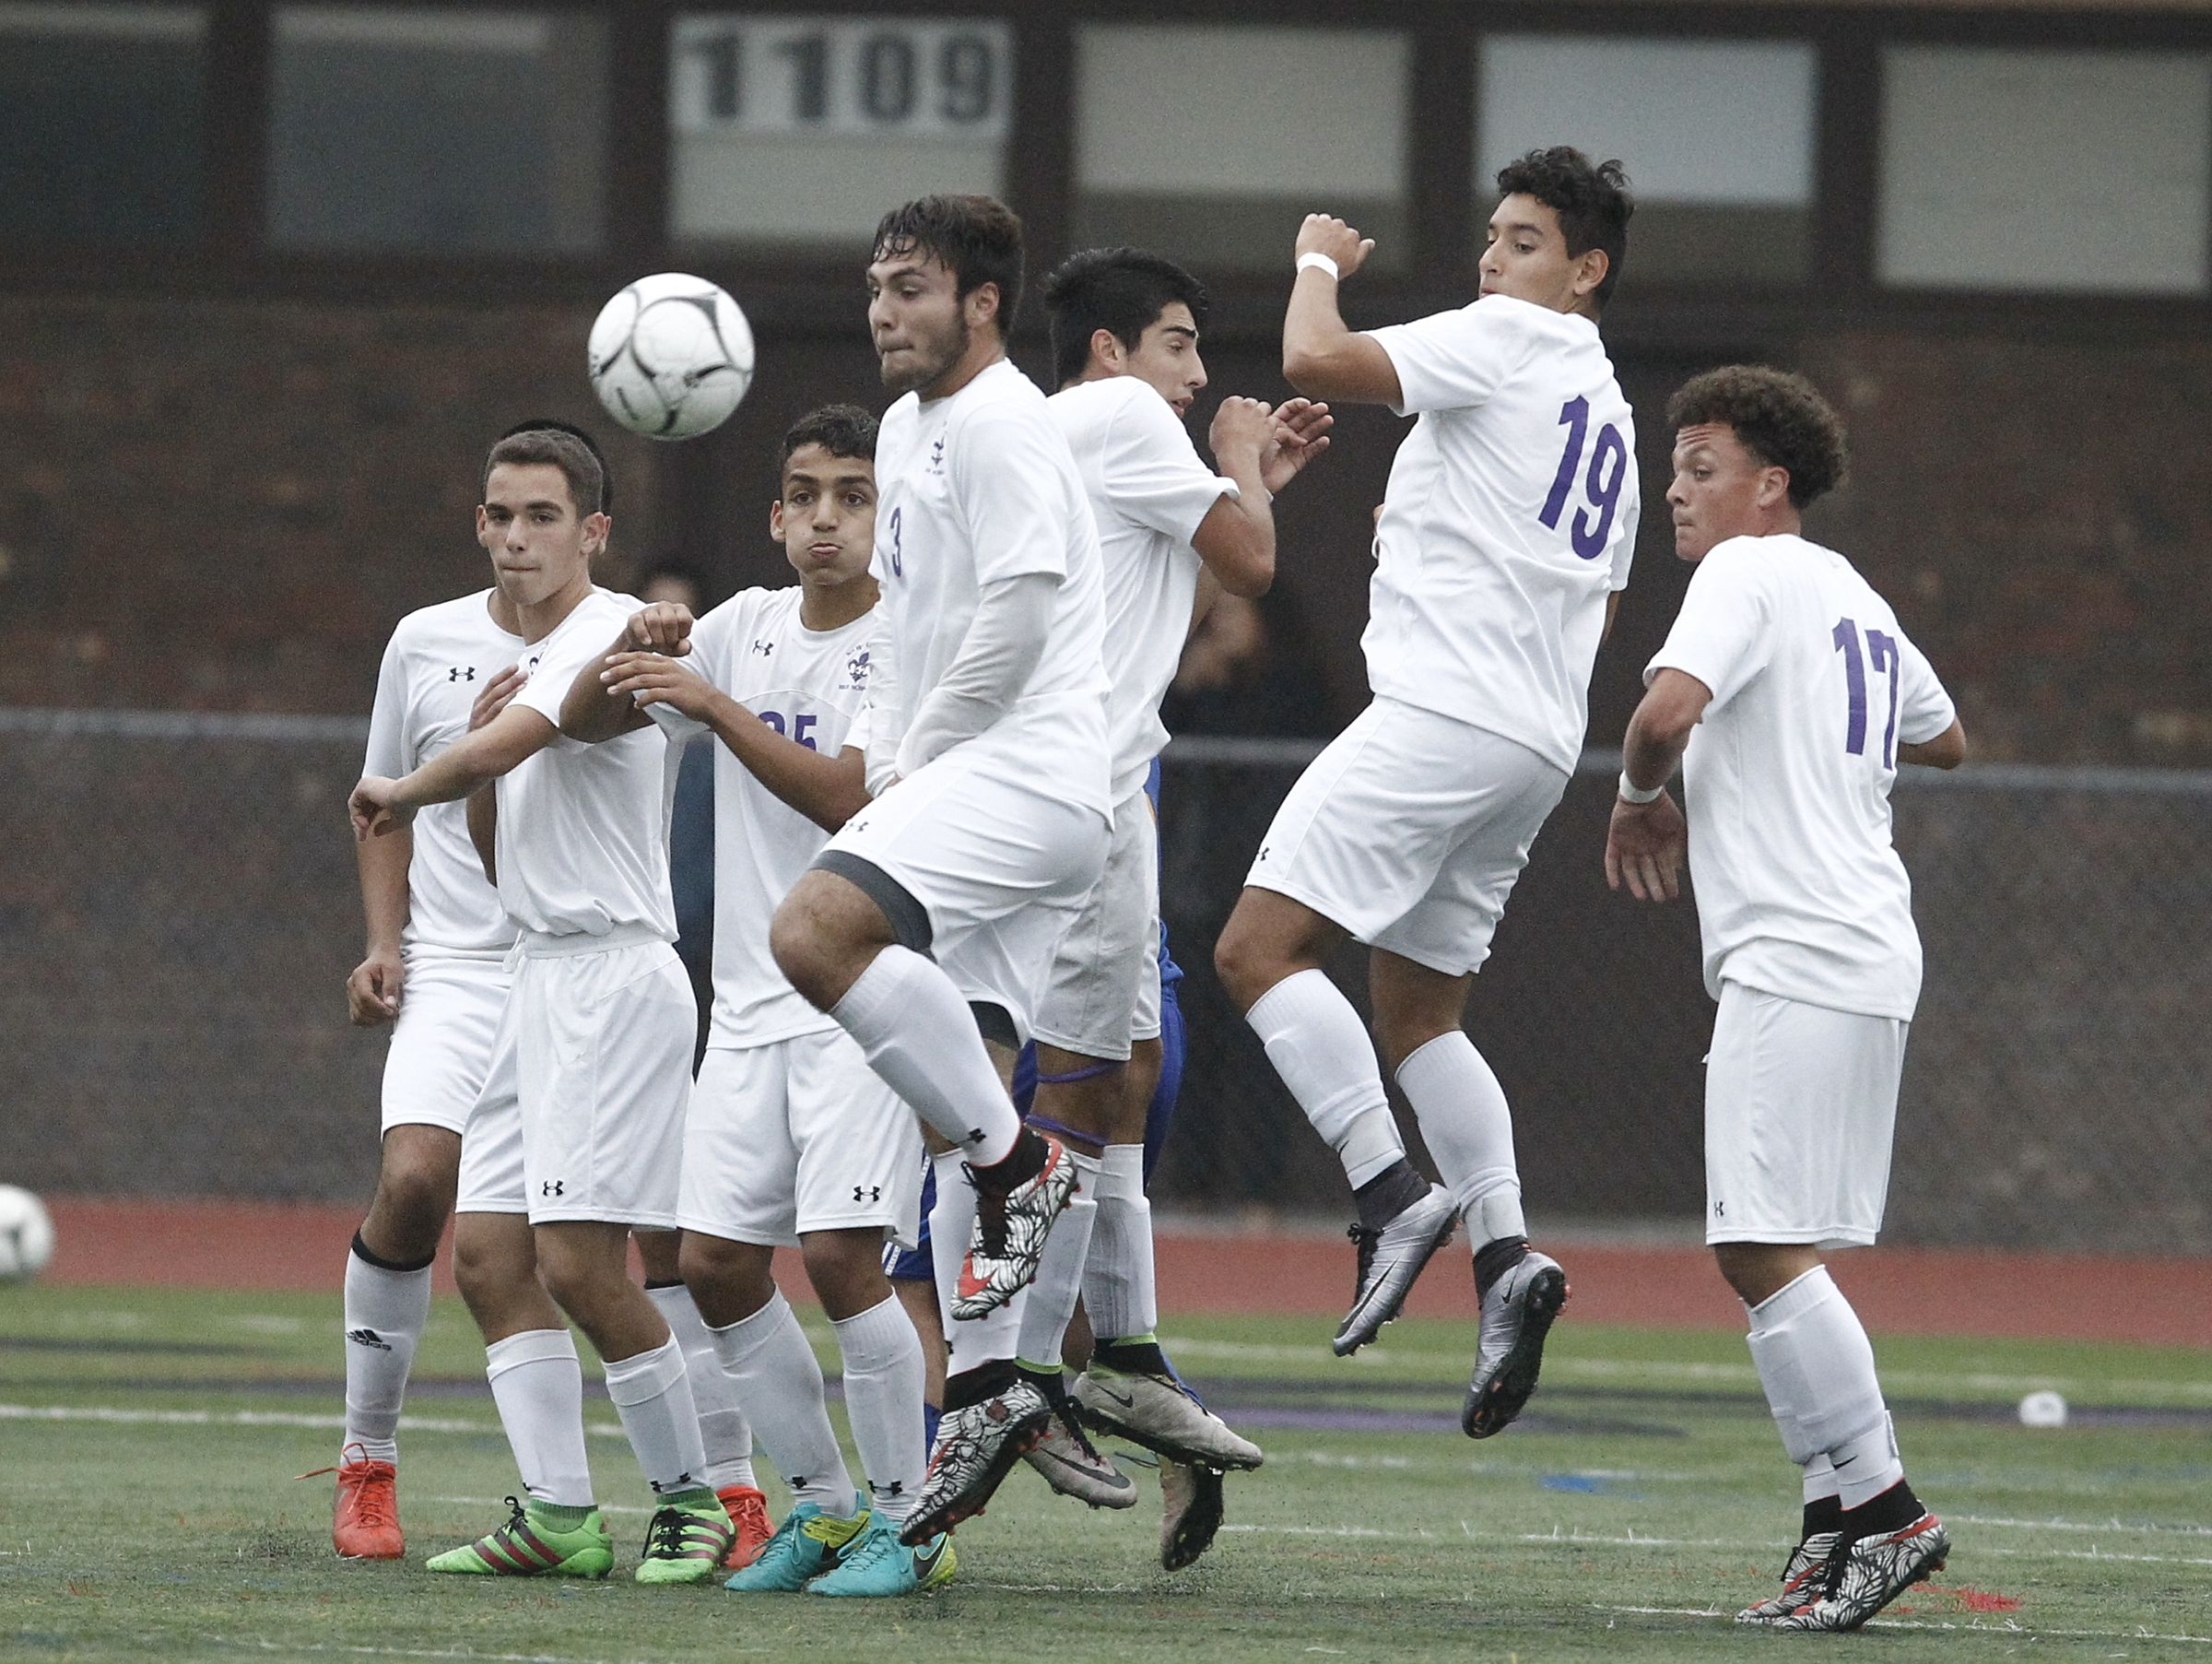 New Rochelle defeats Mahopac 2-0 in the first round of Class AA boys soccer playoffs at New Rochelle High School in New Rochelle on Thursday, October 20, 2016.